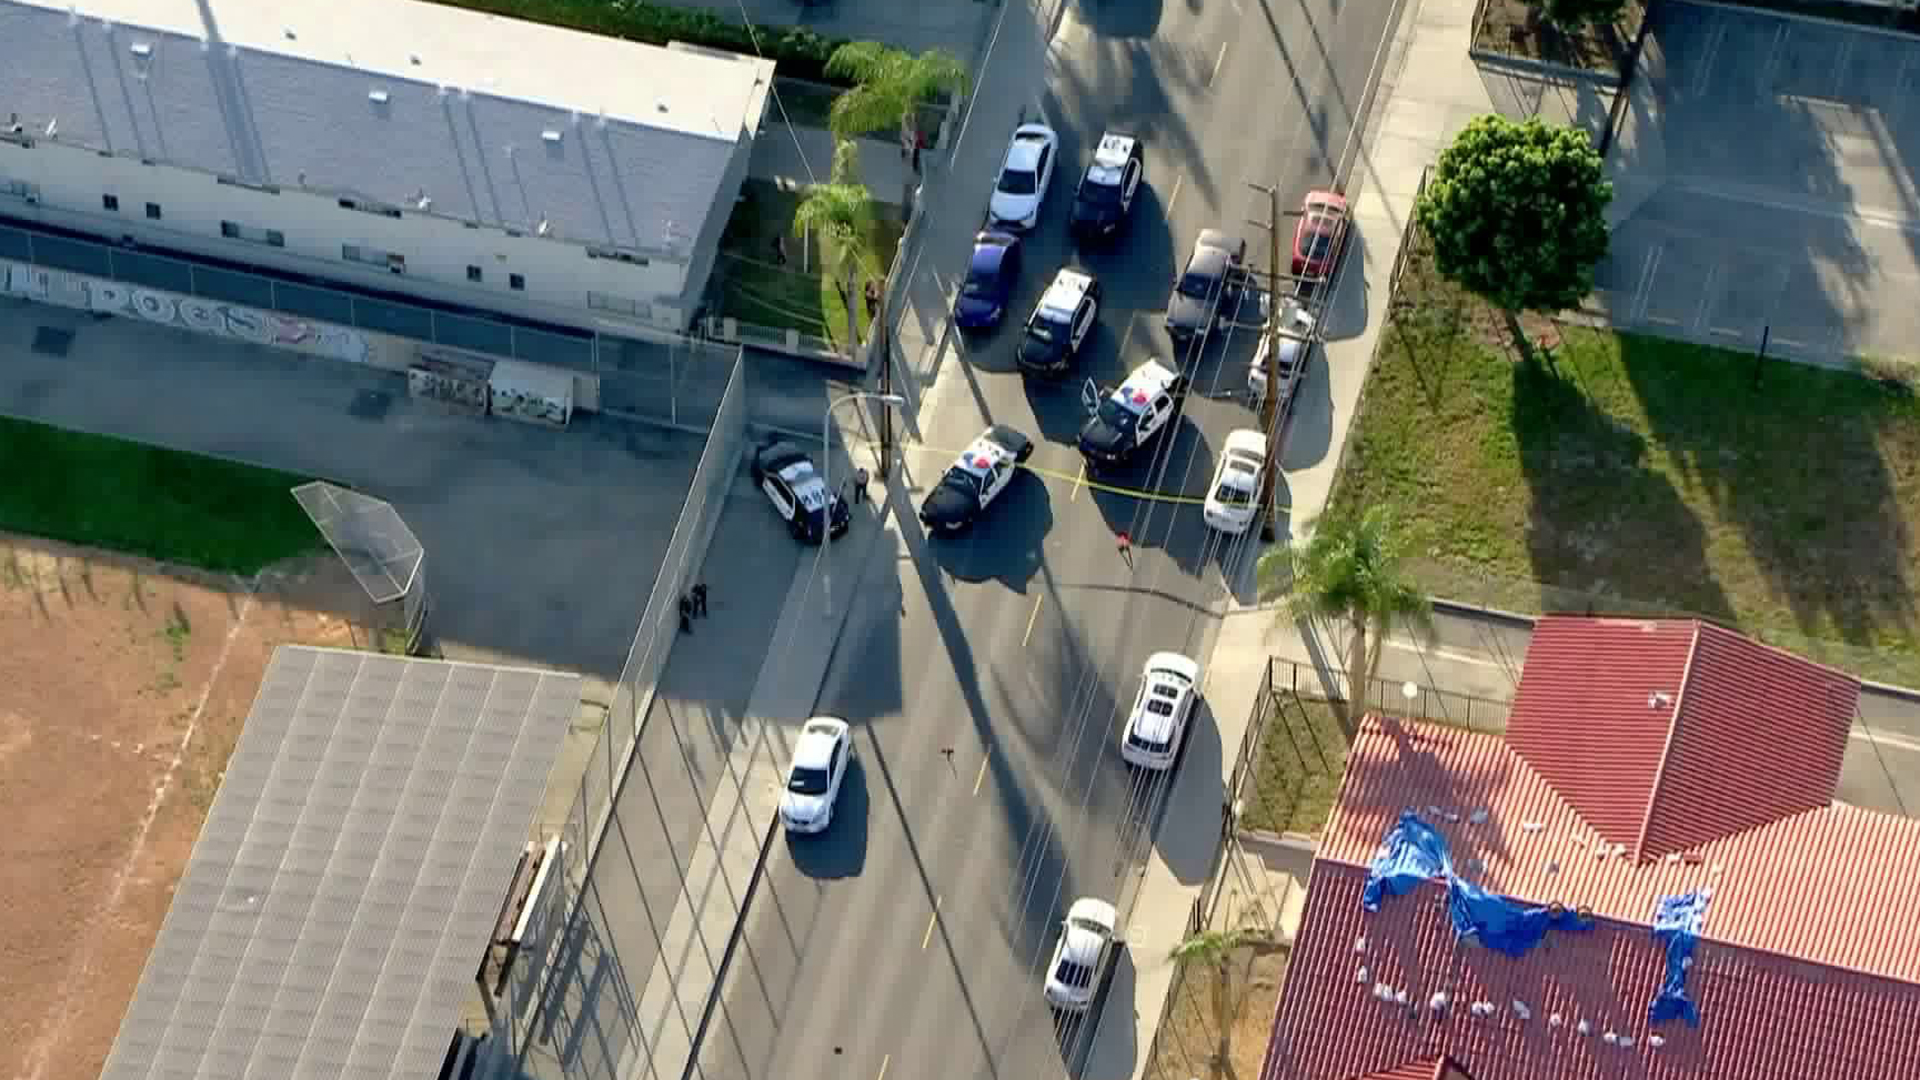 Authorities respond to a deadly shooting outside a school in Cudahy on Feb. 25, 2020. (Credit: KTLA)